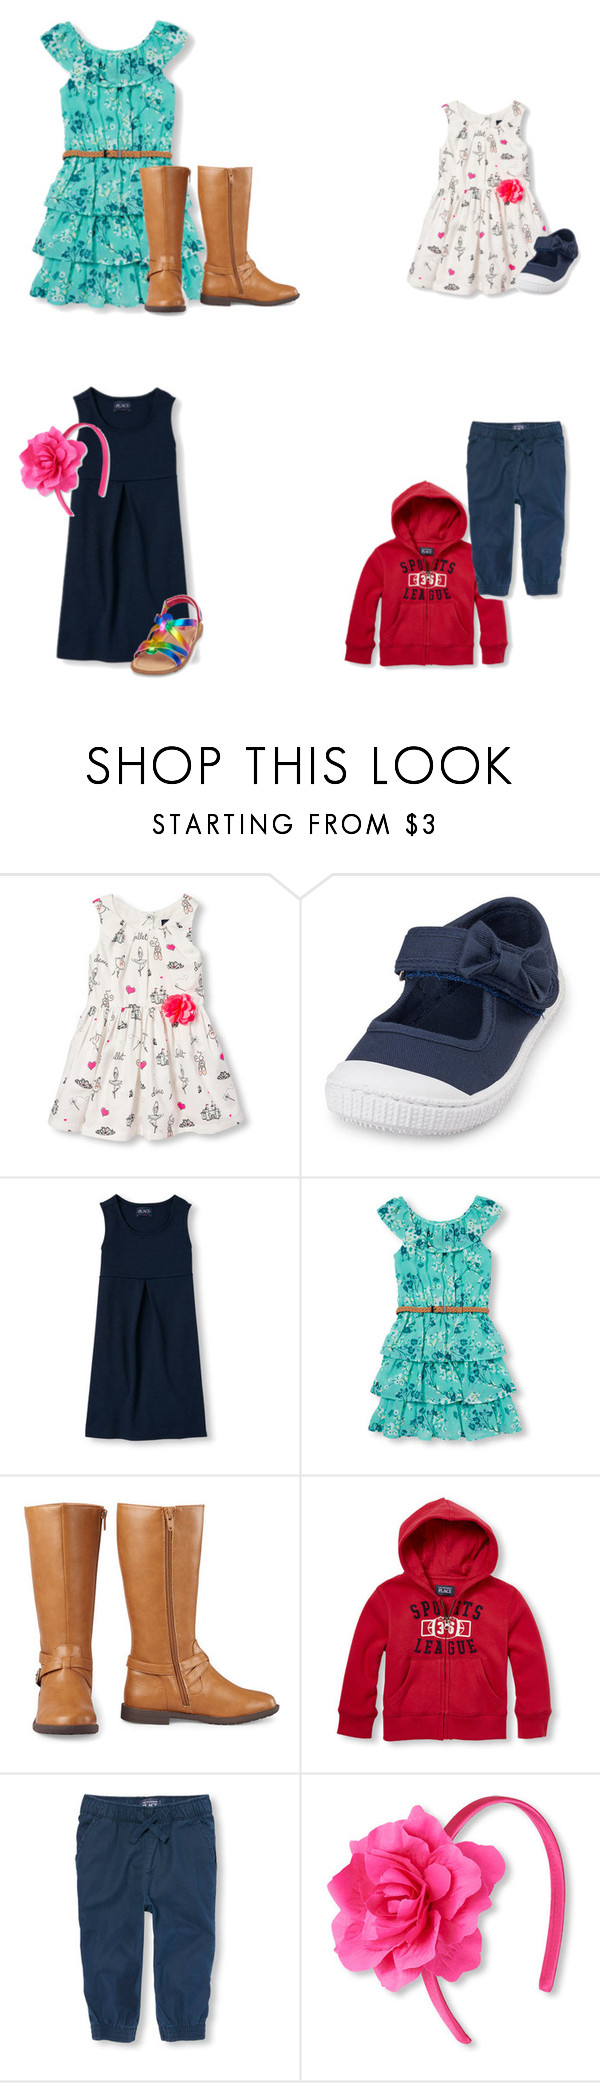 """""""Mya's 4th birthday"""" by haileyvontz ❤ liked on Polyvore featuring Ryder"""